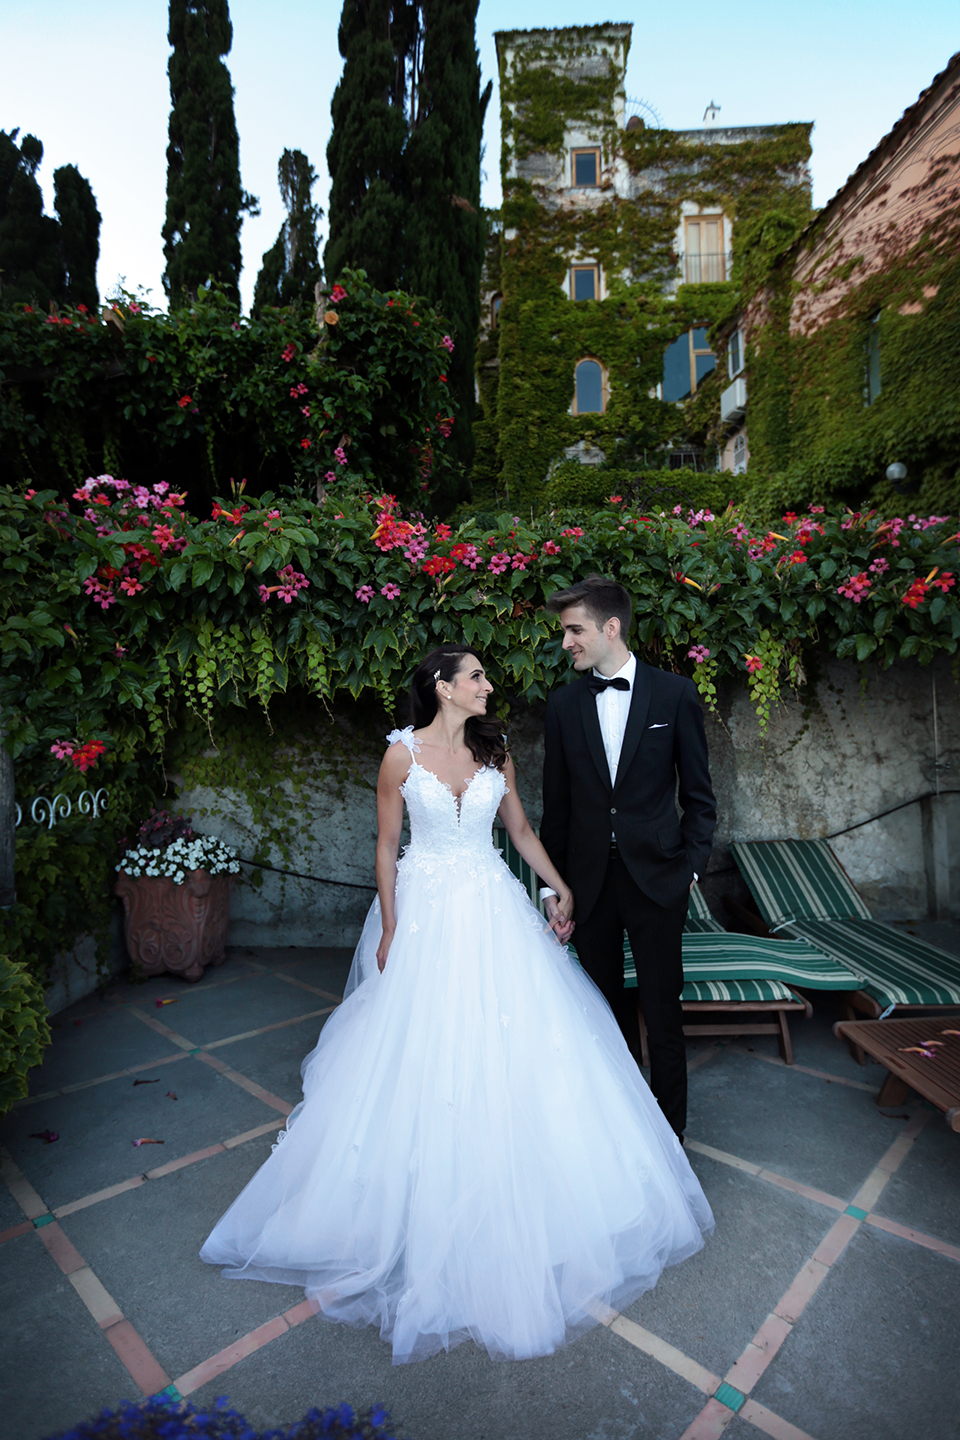 positano-weddin-photographers-italy-wedding-photographers-destination-wedding-photographers-estilo-best-wedding-photographers-in-the-world-casper-bosman-wedding-gown-wedding-style-stylish-modern-wedding-photography-056.jpg